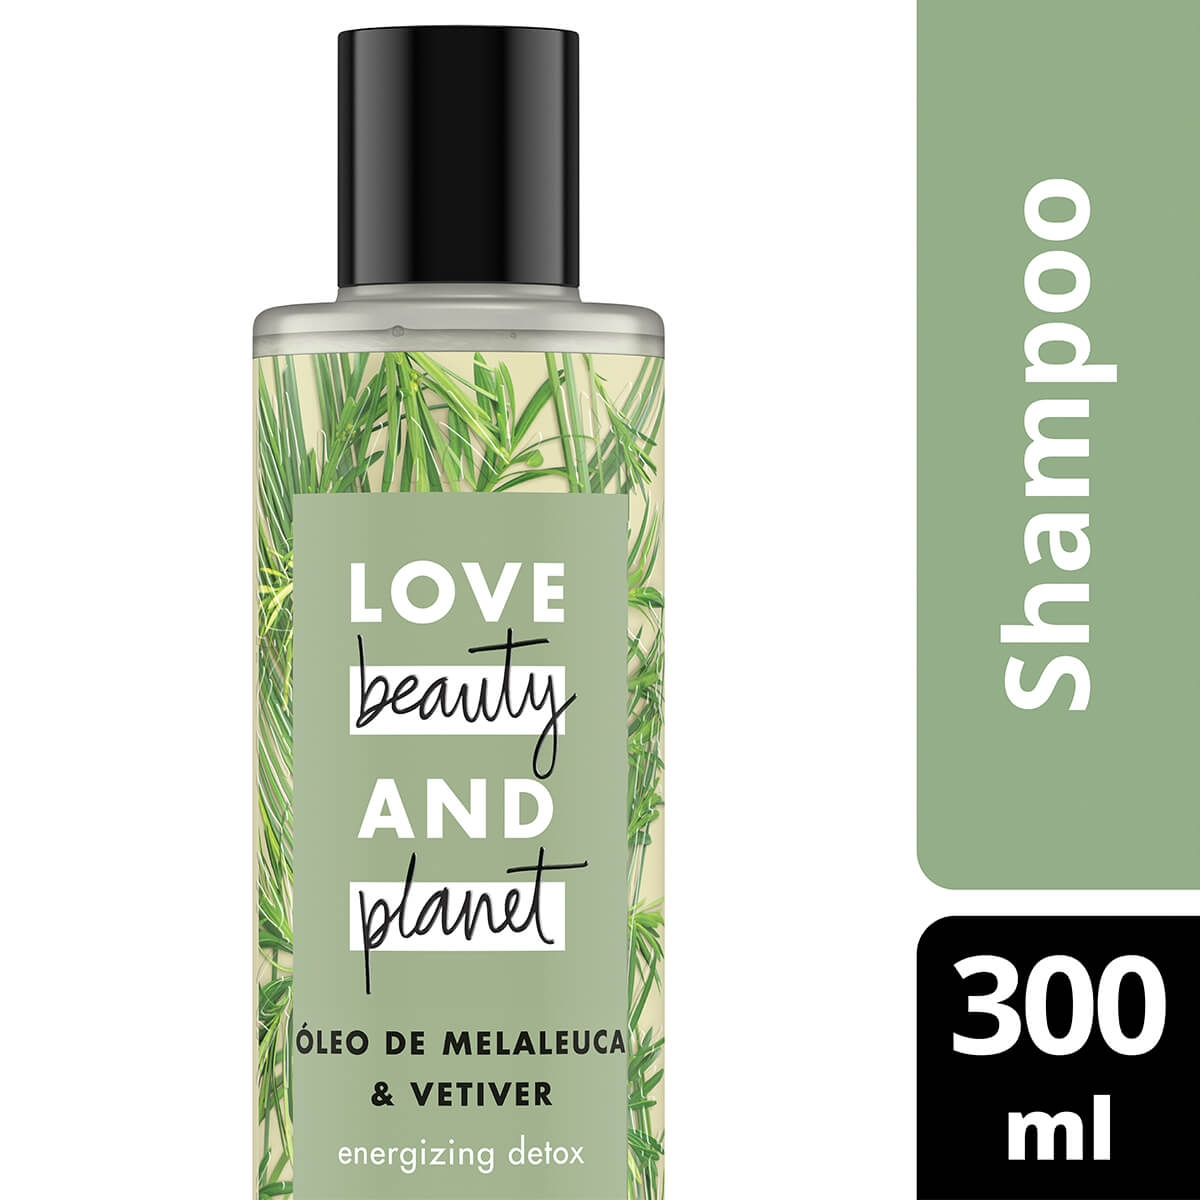 Shampoo Energizing Detox Óleo de Melaleuca & Vetiver Love, Beauty And Planet 300ml Love, Beauty And Planet